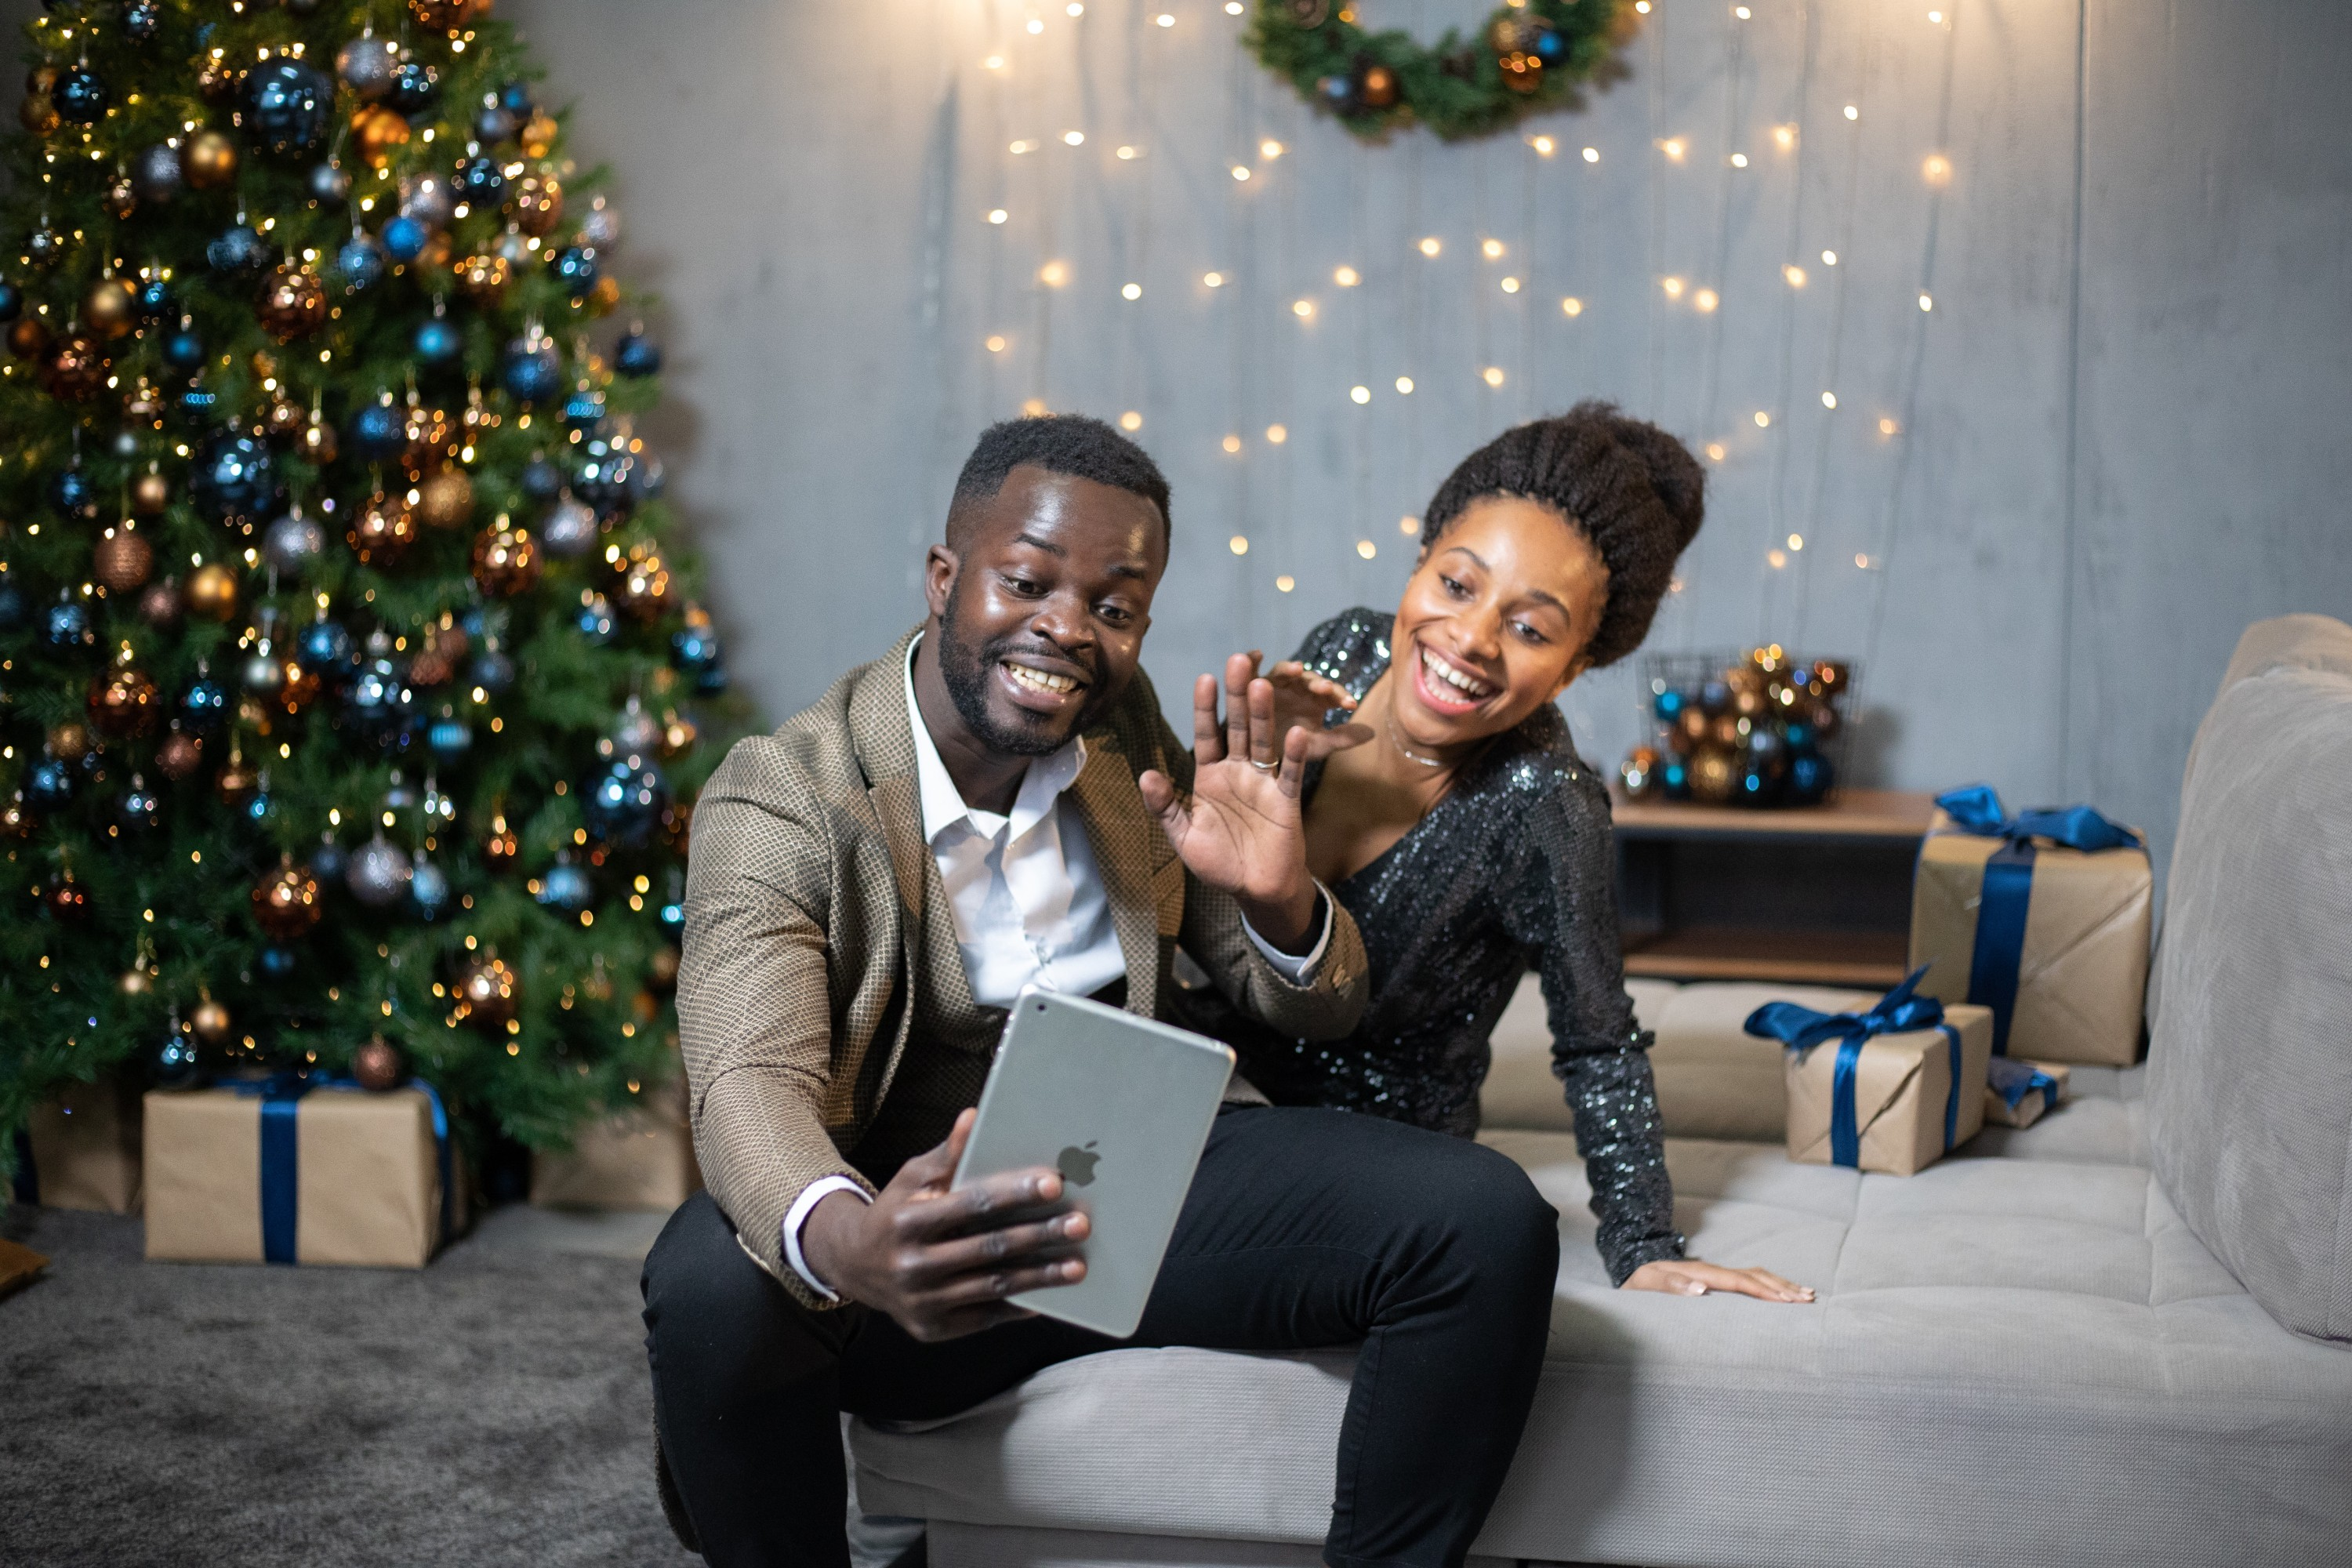 Two people infront of a Christmas Tree smiling at a handheld iPad